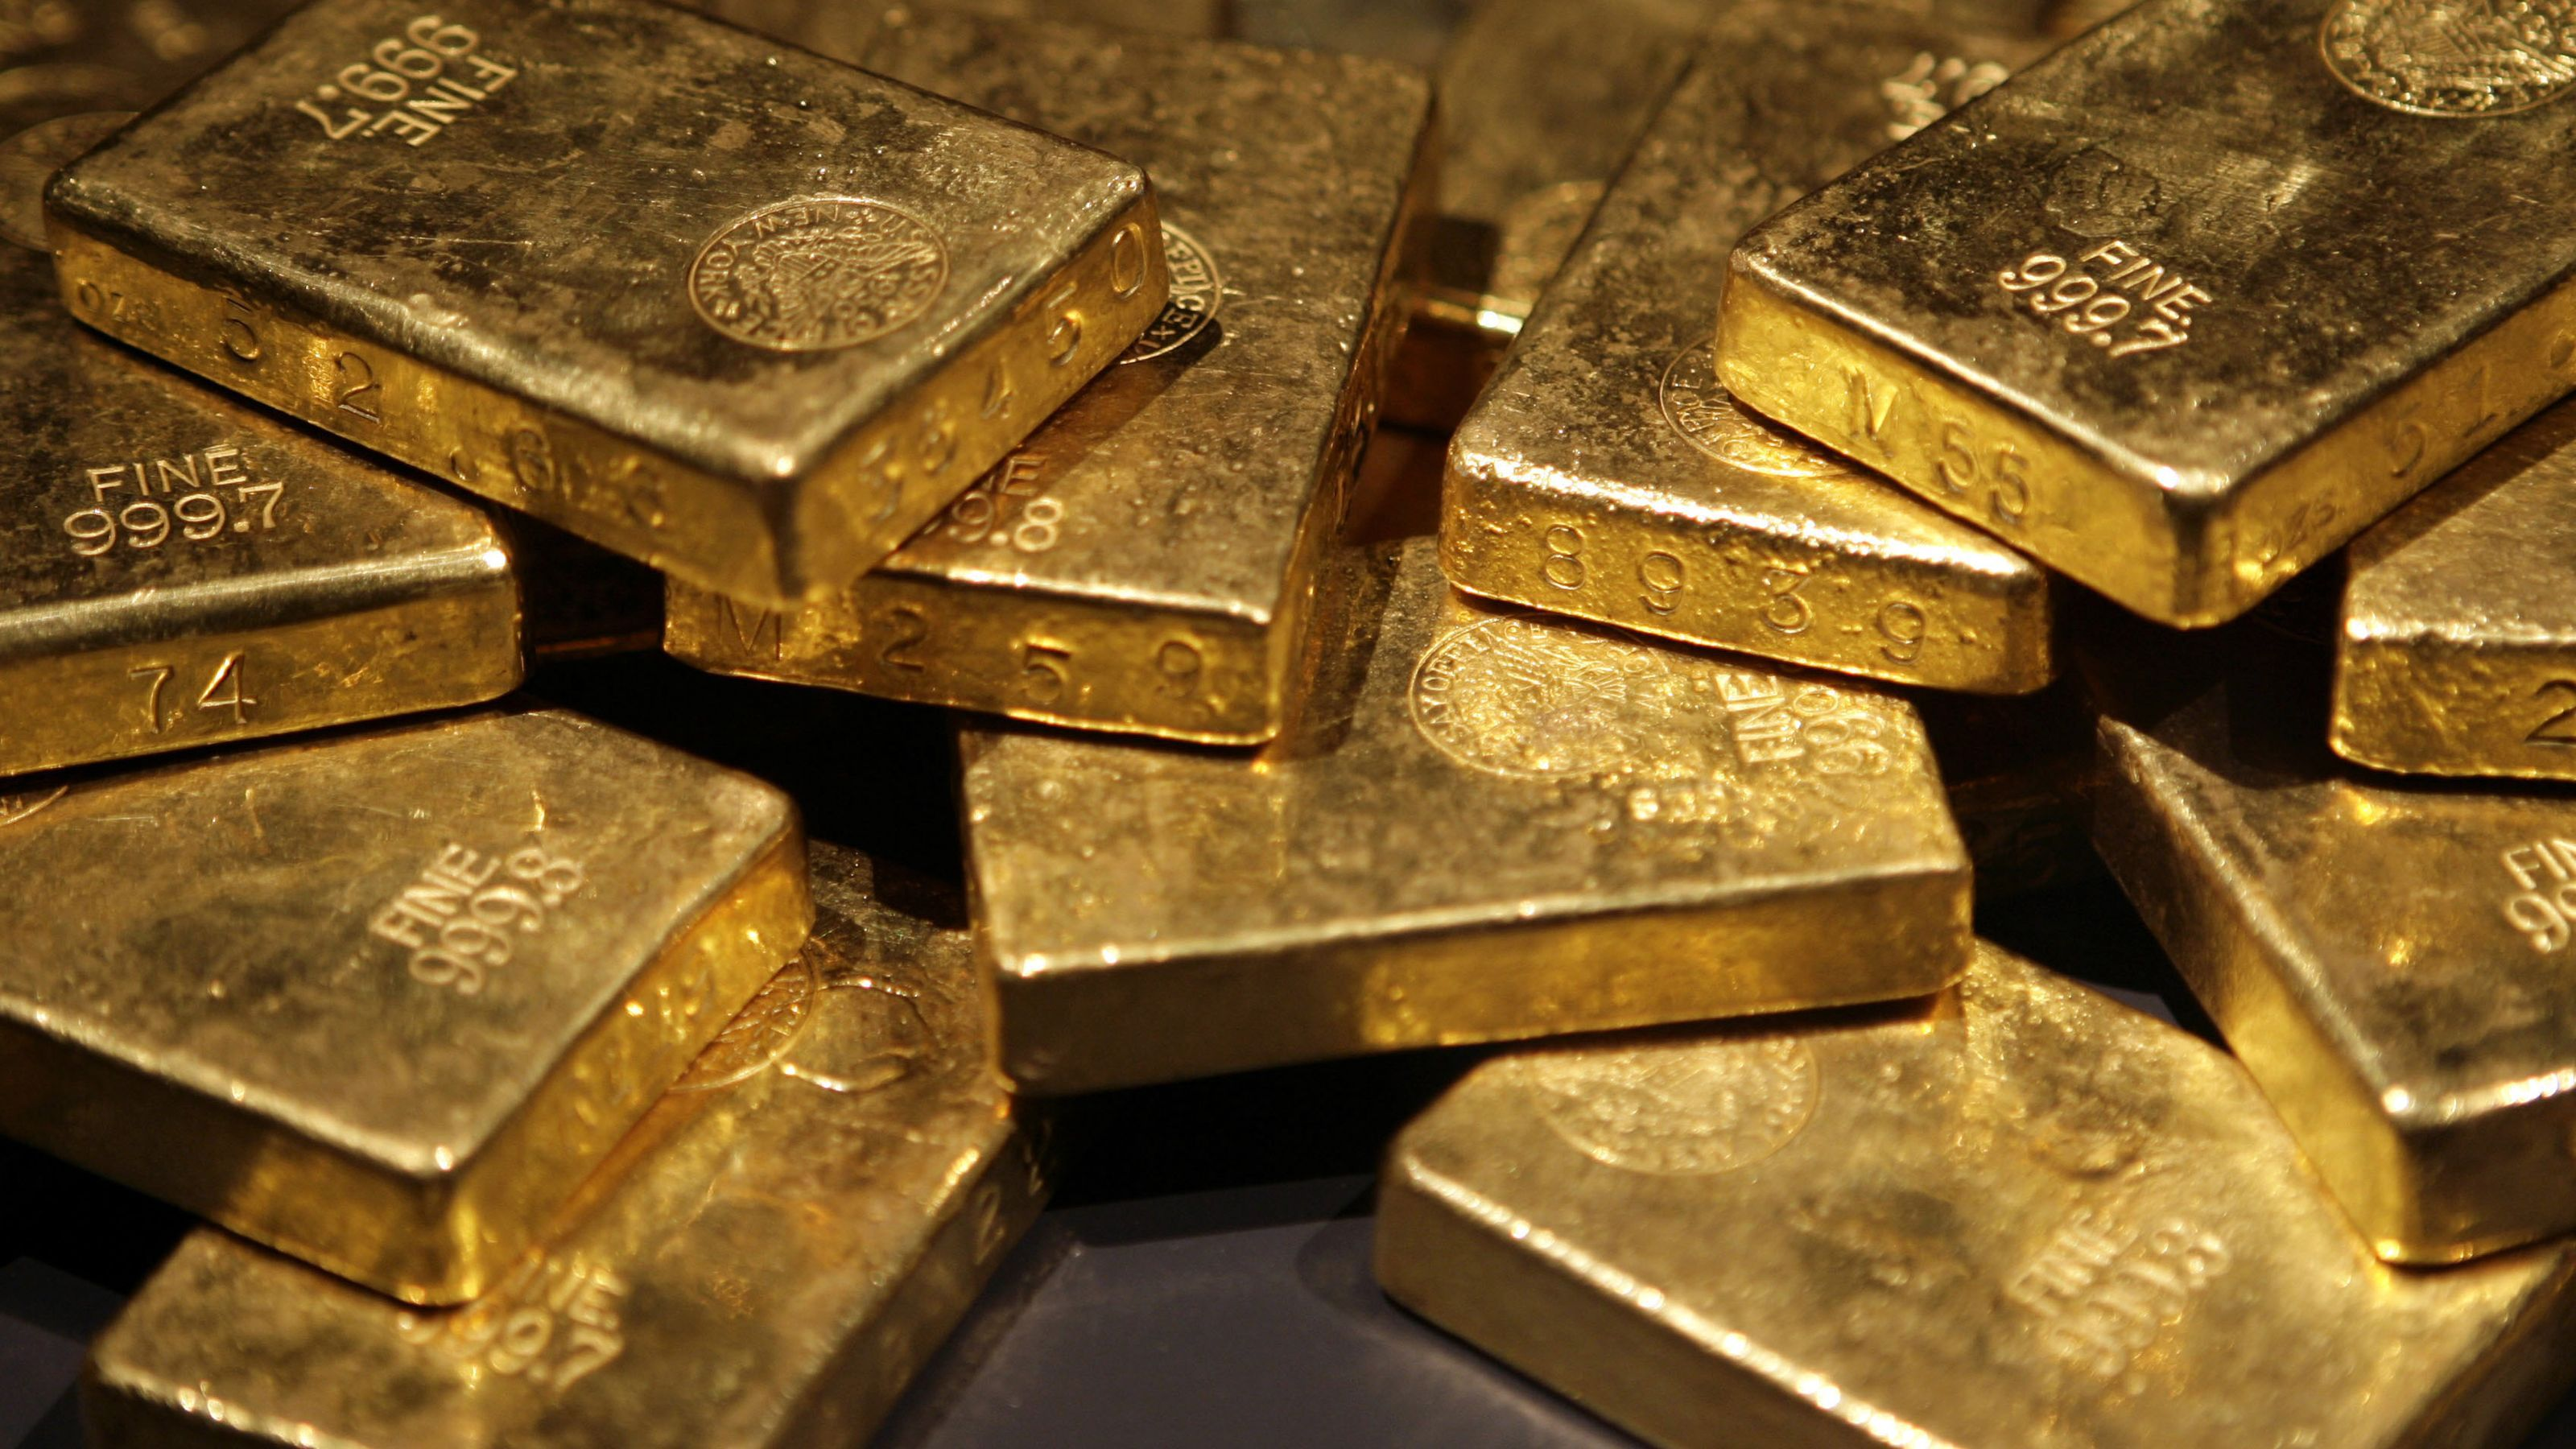 Top nations stockpiling gold